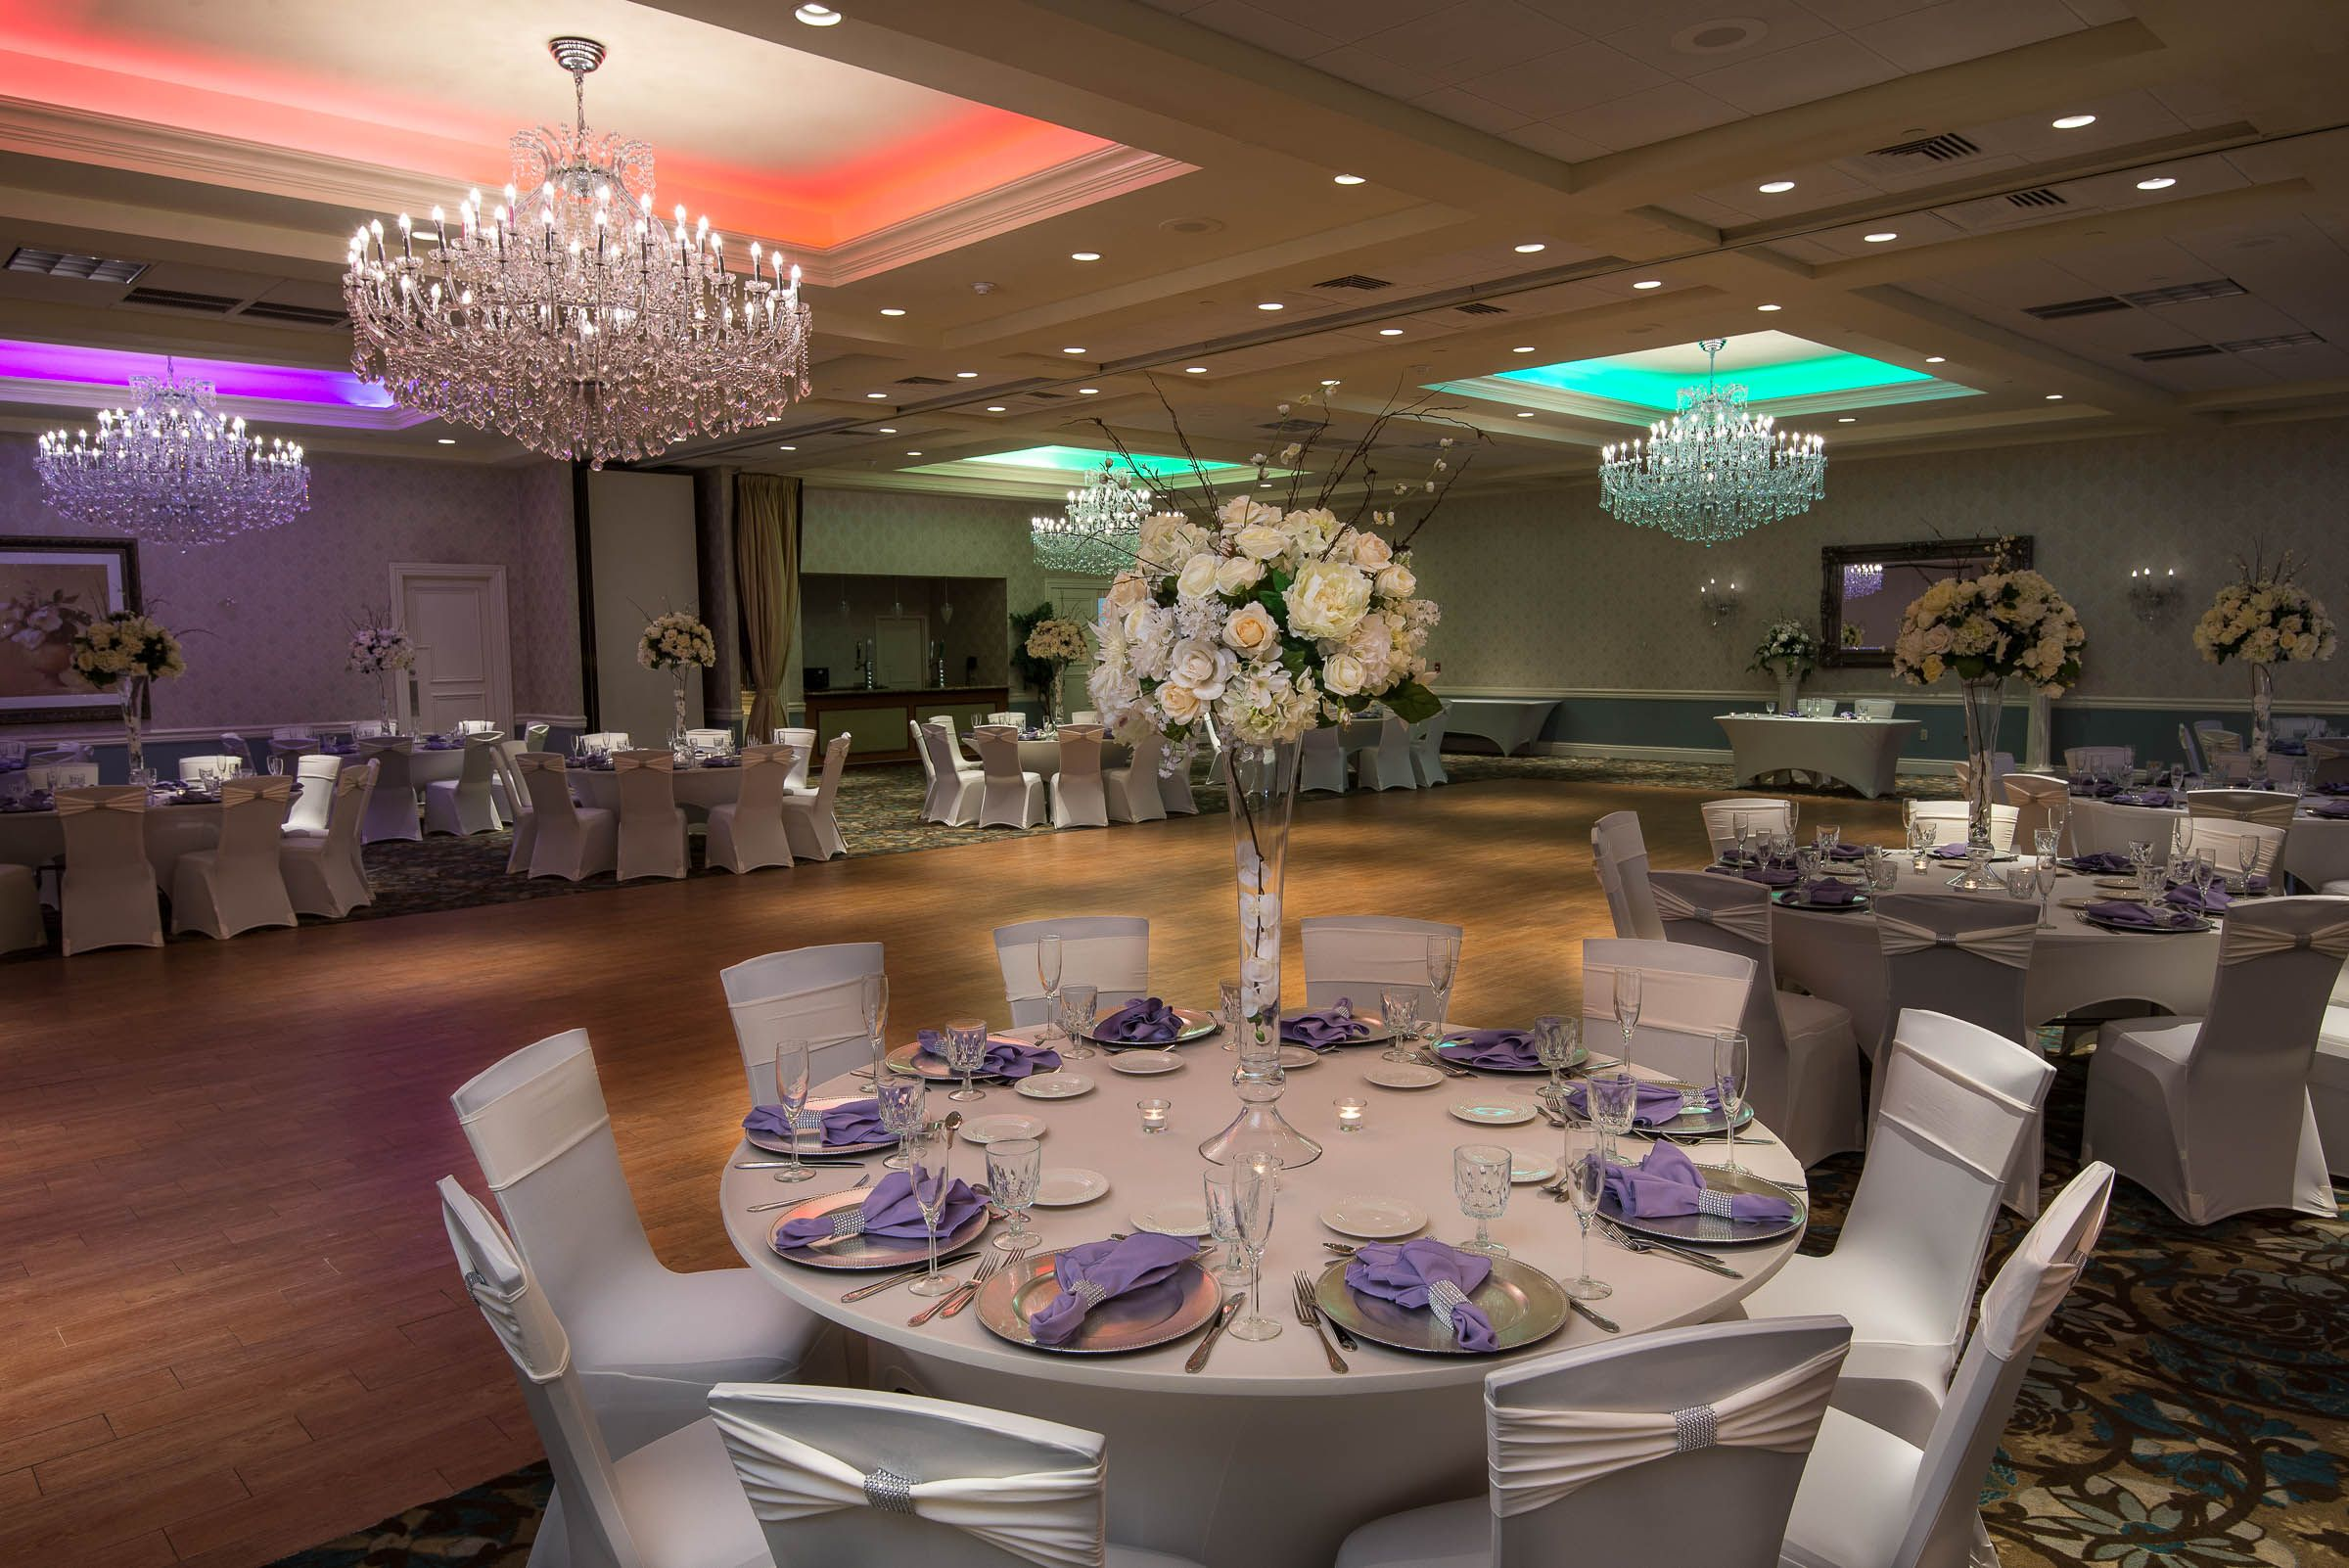 Photos | Nj wedding venues, Ballroom, Radisson hotel